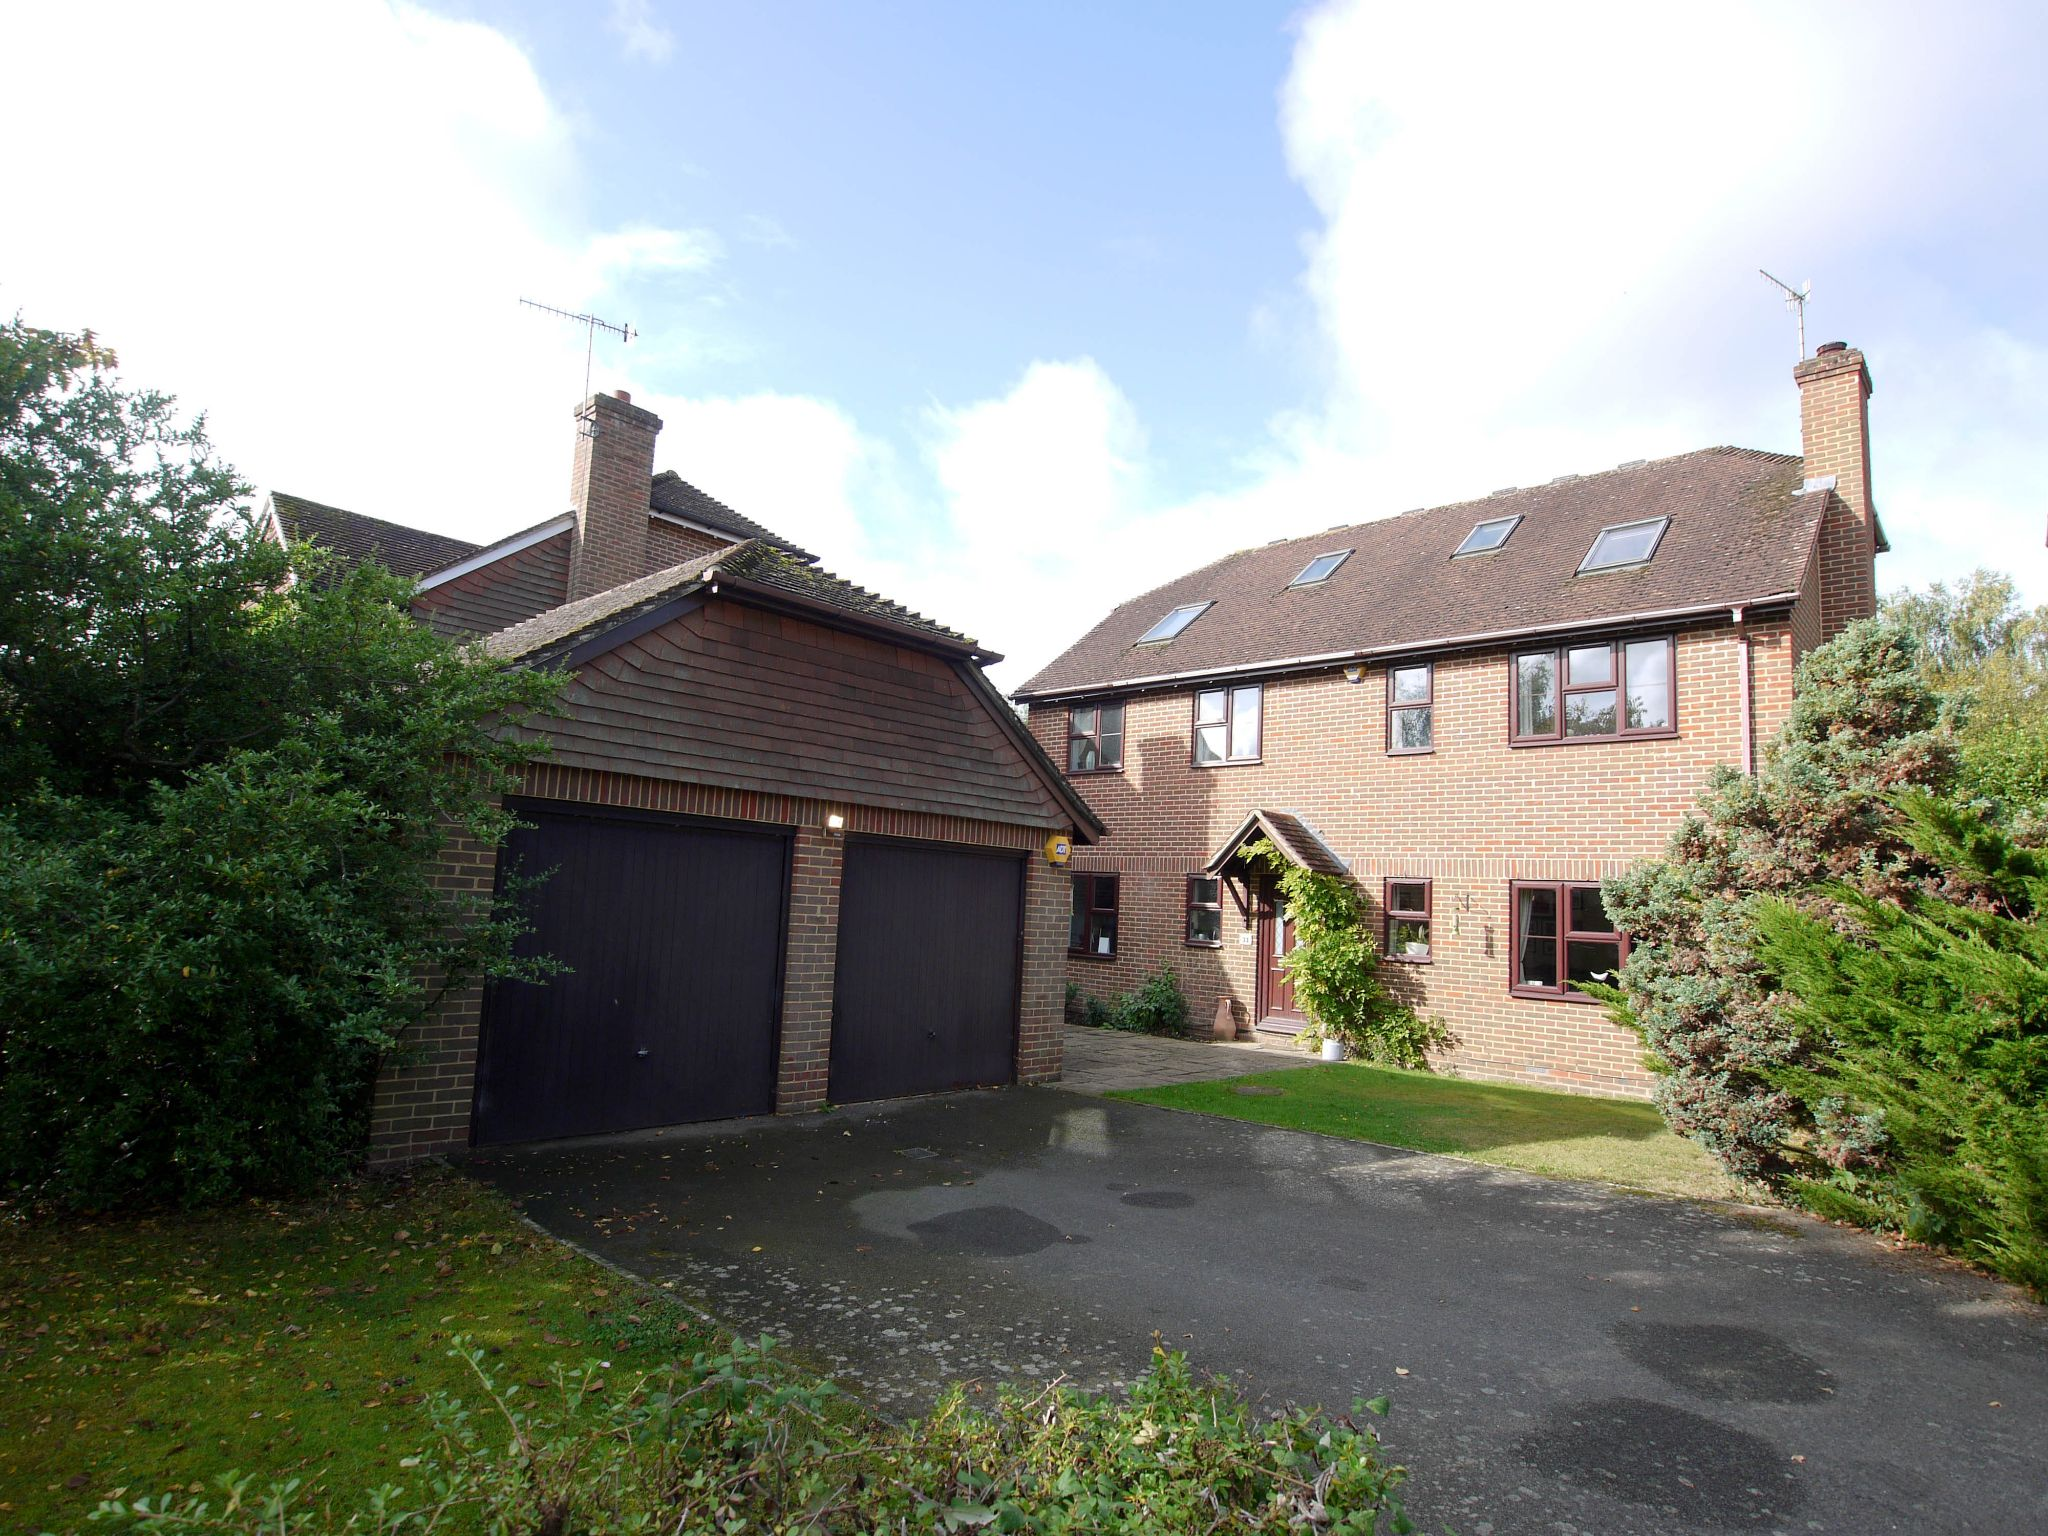 6 bedroom detached house Sale Agreed in Near Tonbridge - Photograph 1